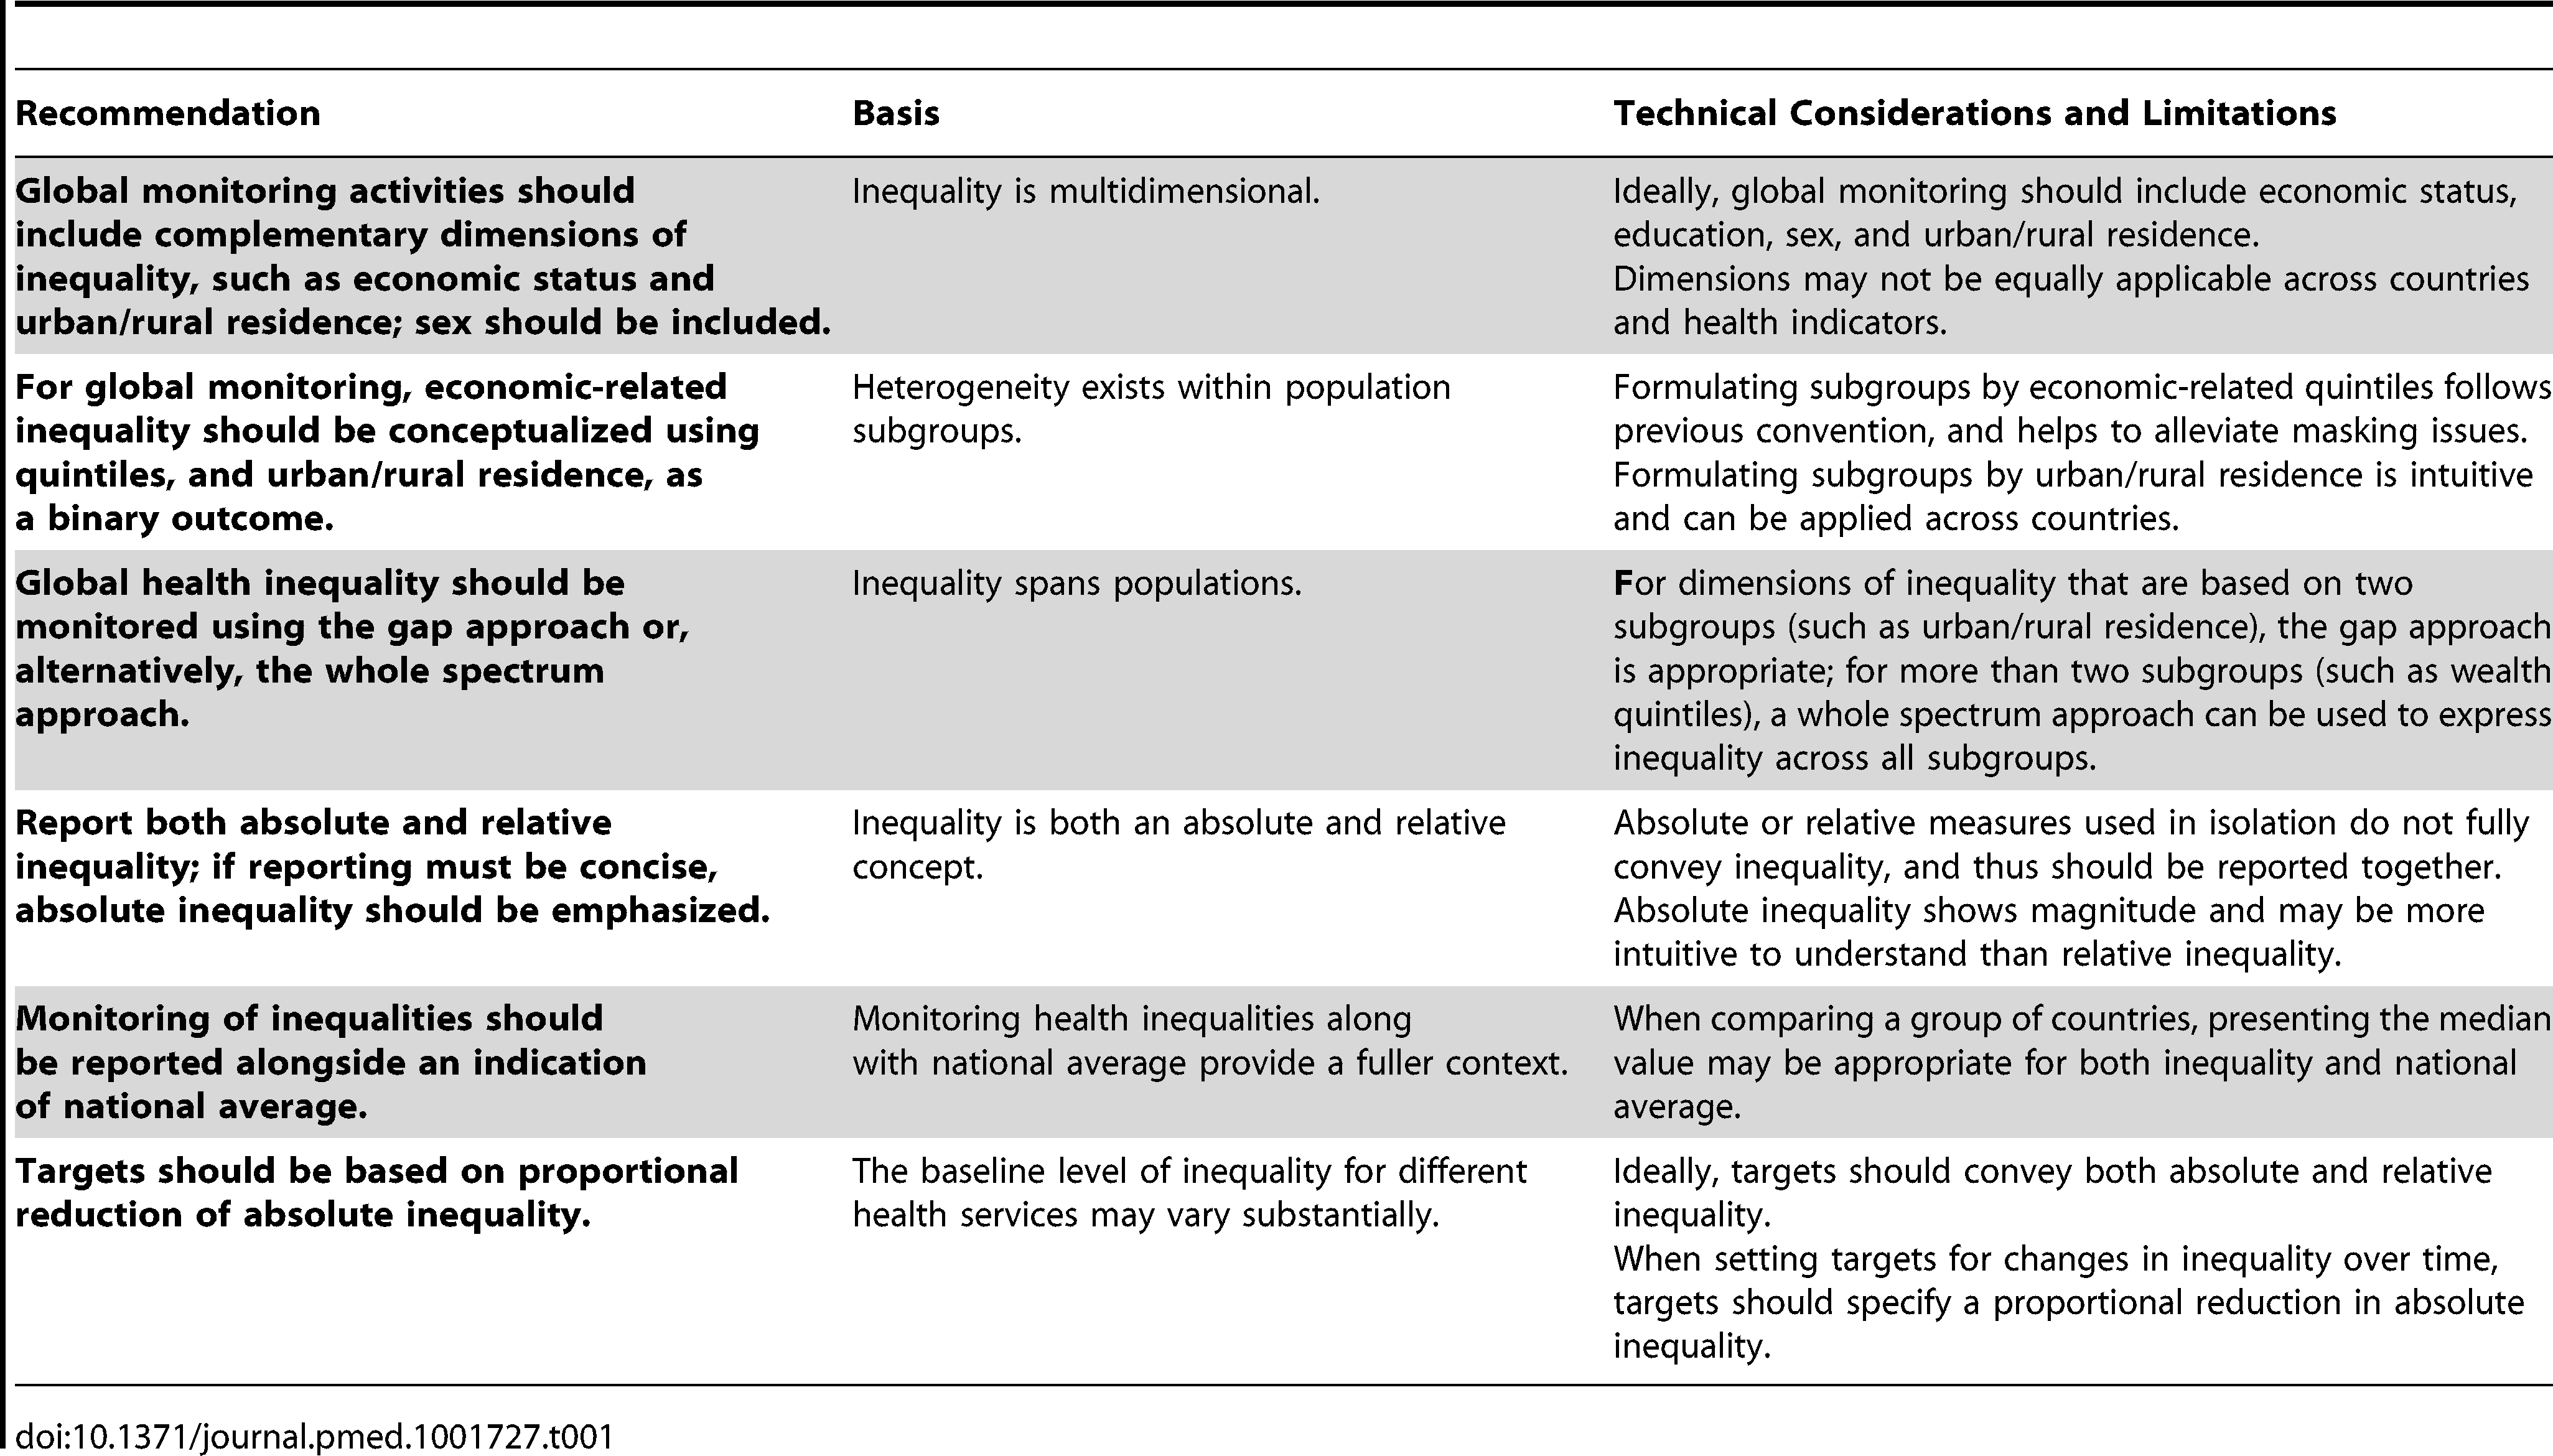 Summary of recommendations for global equity-oriented monitoring.